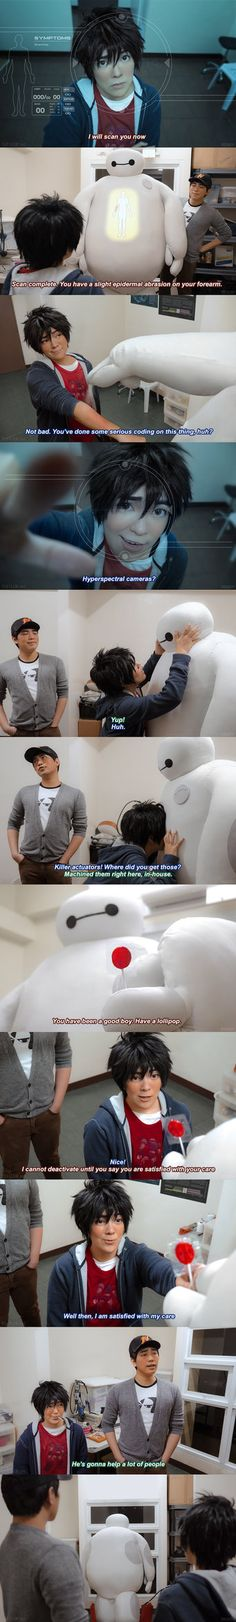 Part 2 of a photo sequence we did based on the scene where Hiro first meets Baymax! This made me think of the time when Baymax finally started working properly, and Tadashi looked at him proudly an...